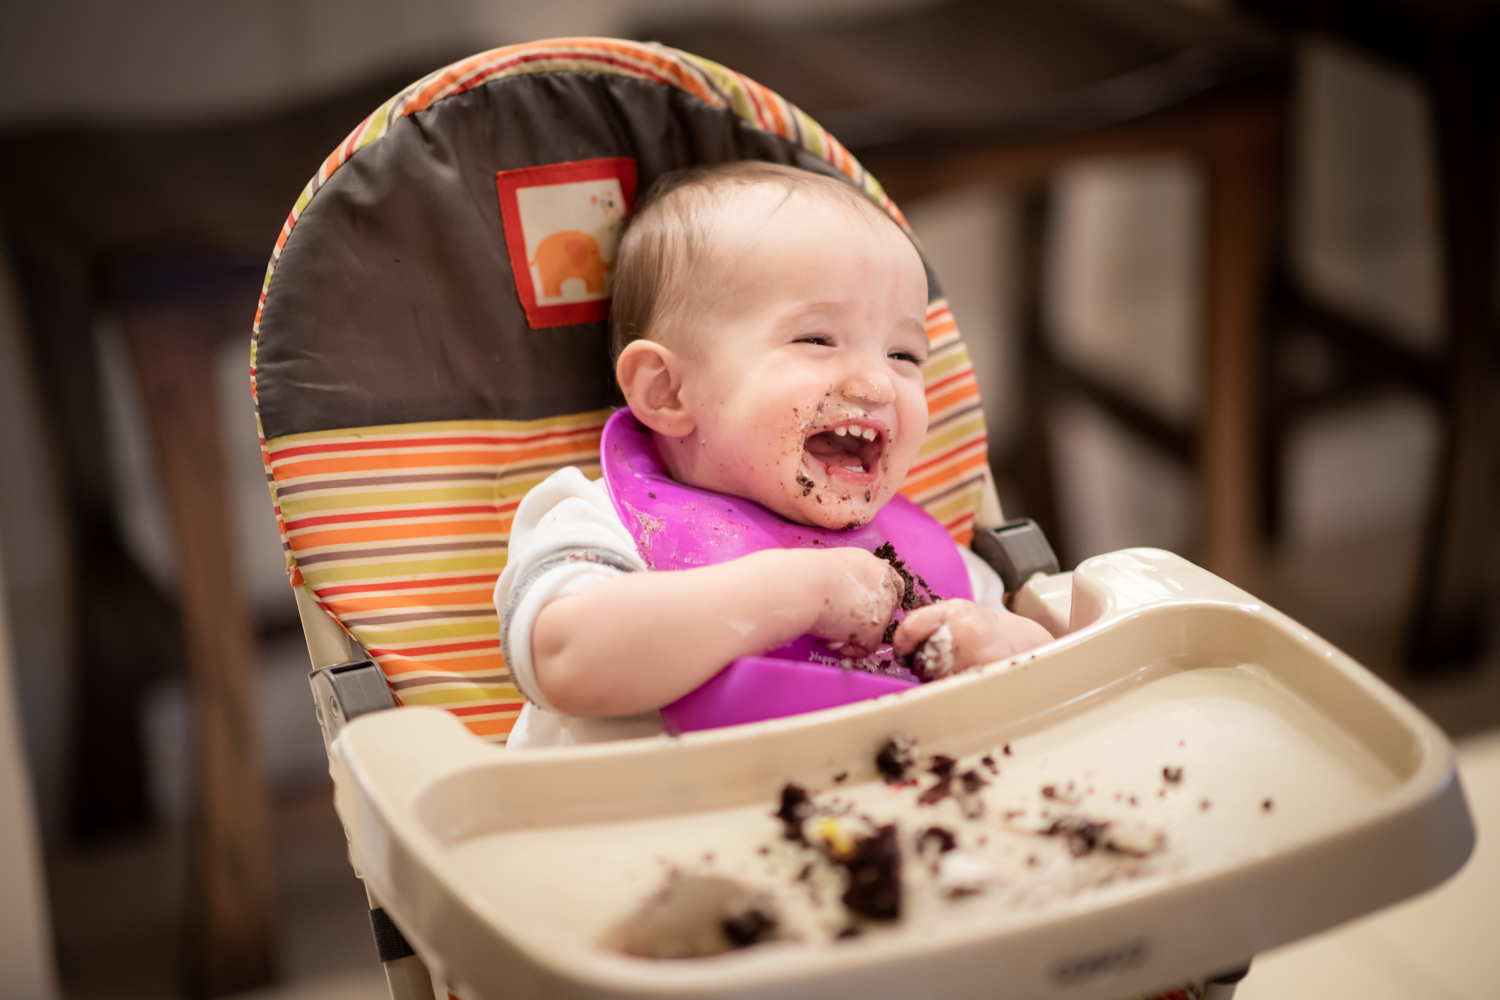 Layla laughs in her highchair, covered in cake.